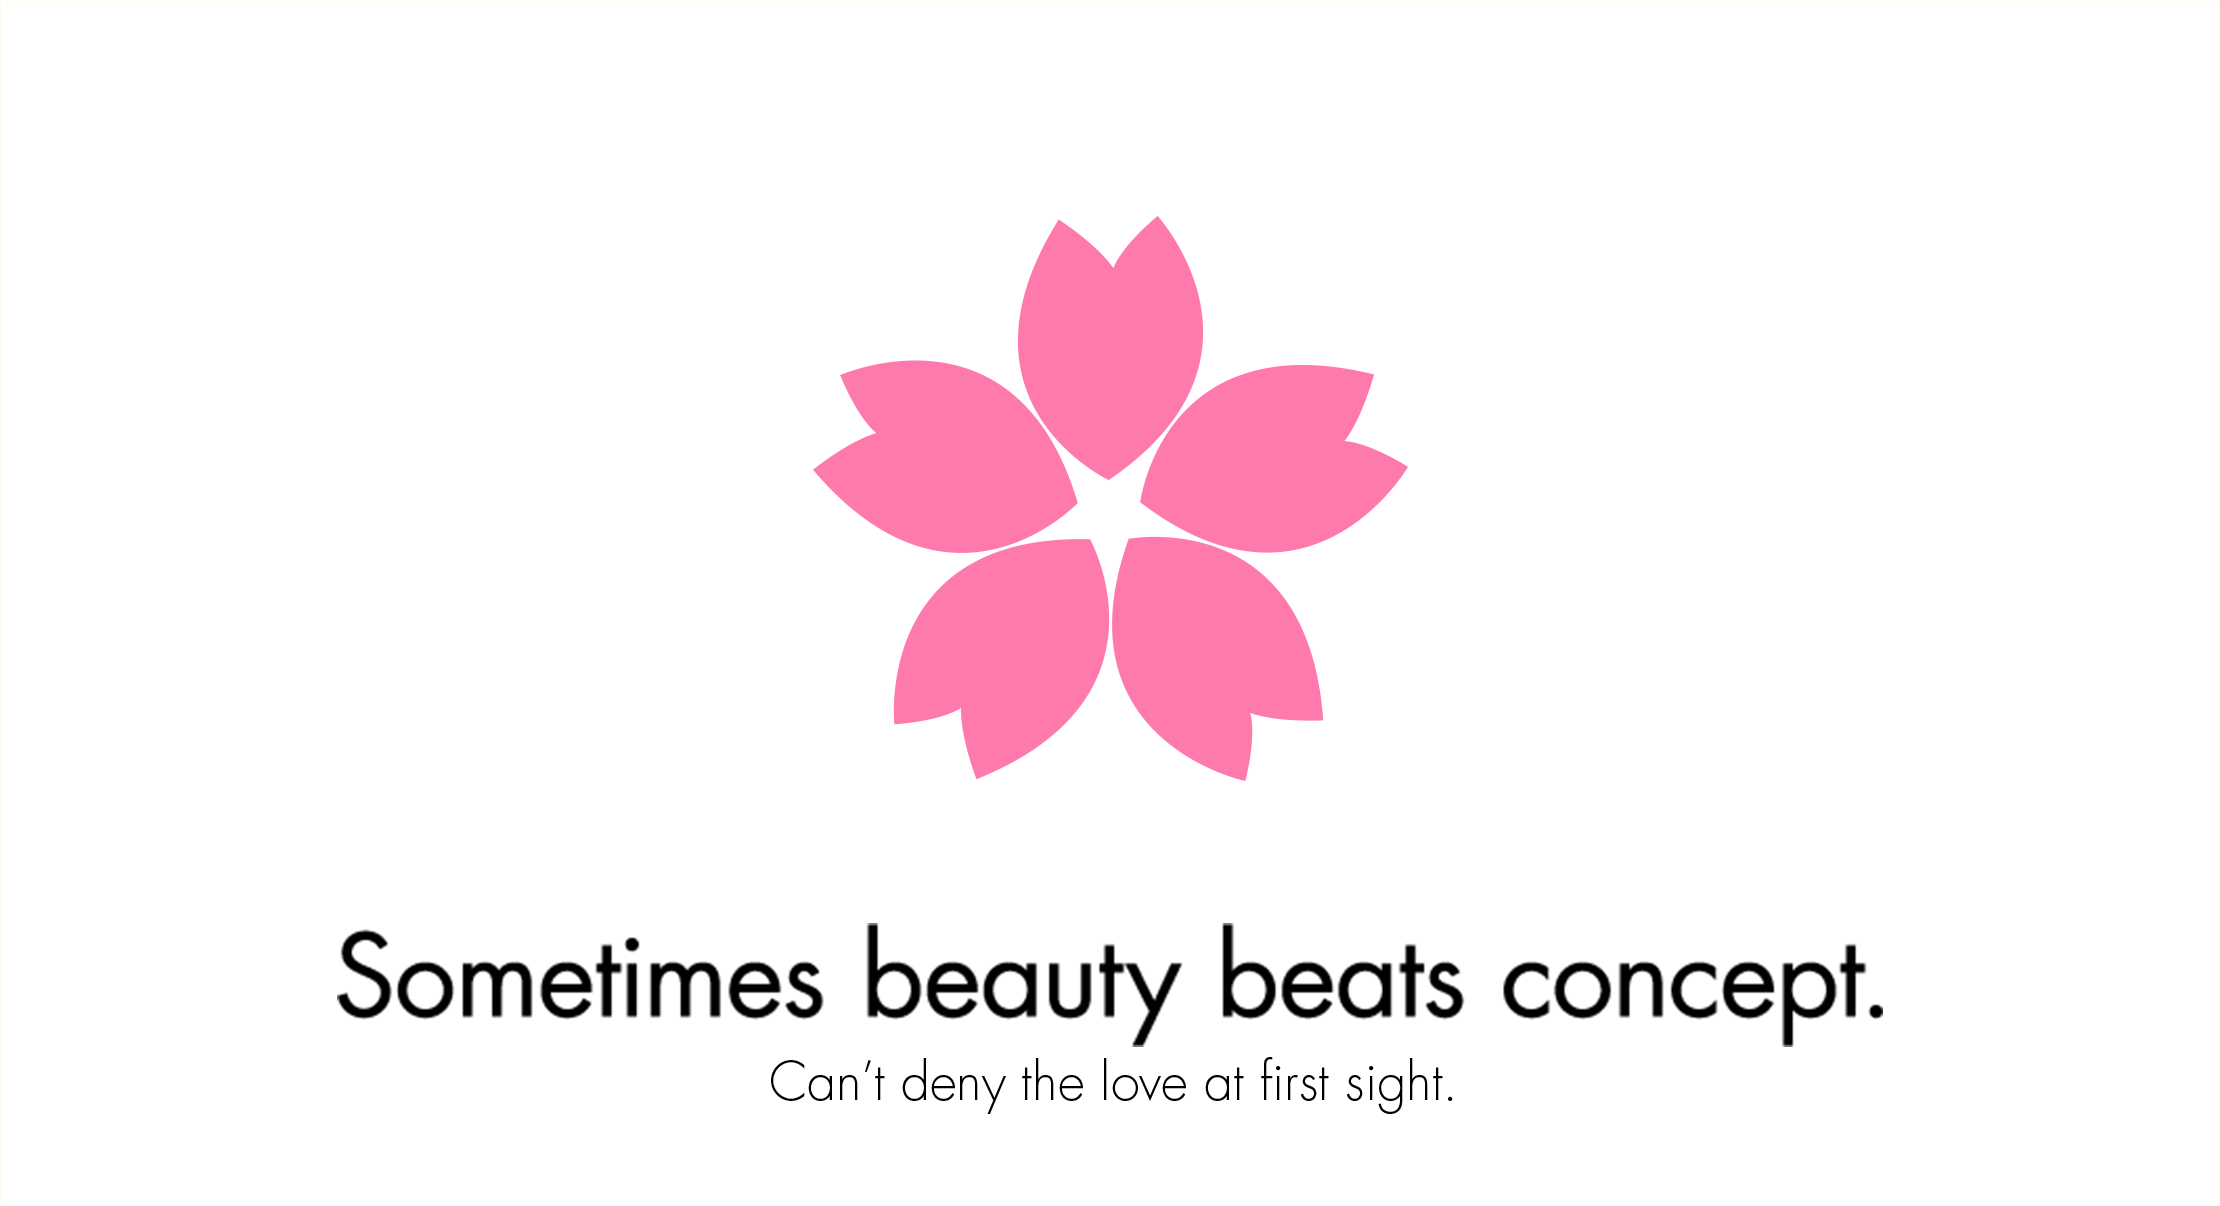 i_see_4_sometimes_beauty_beats_concept.png